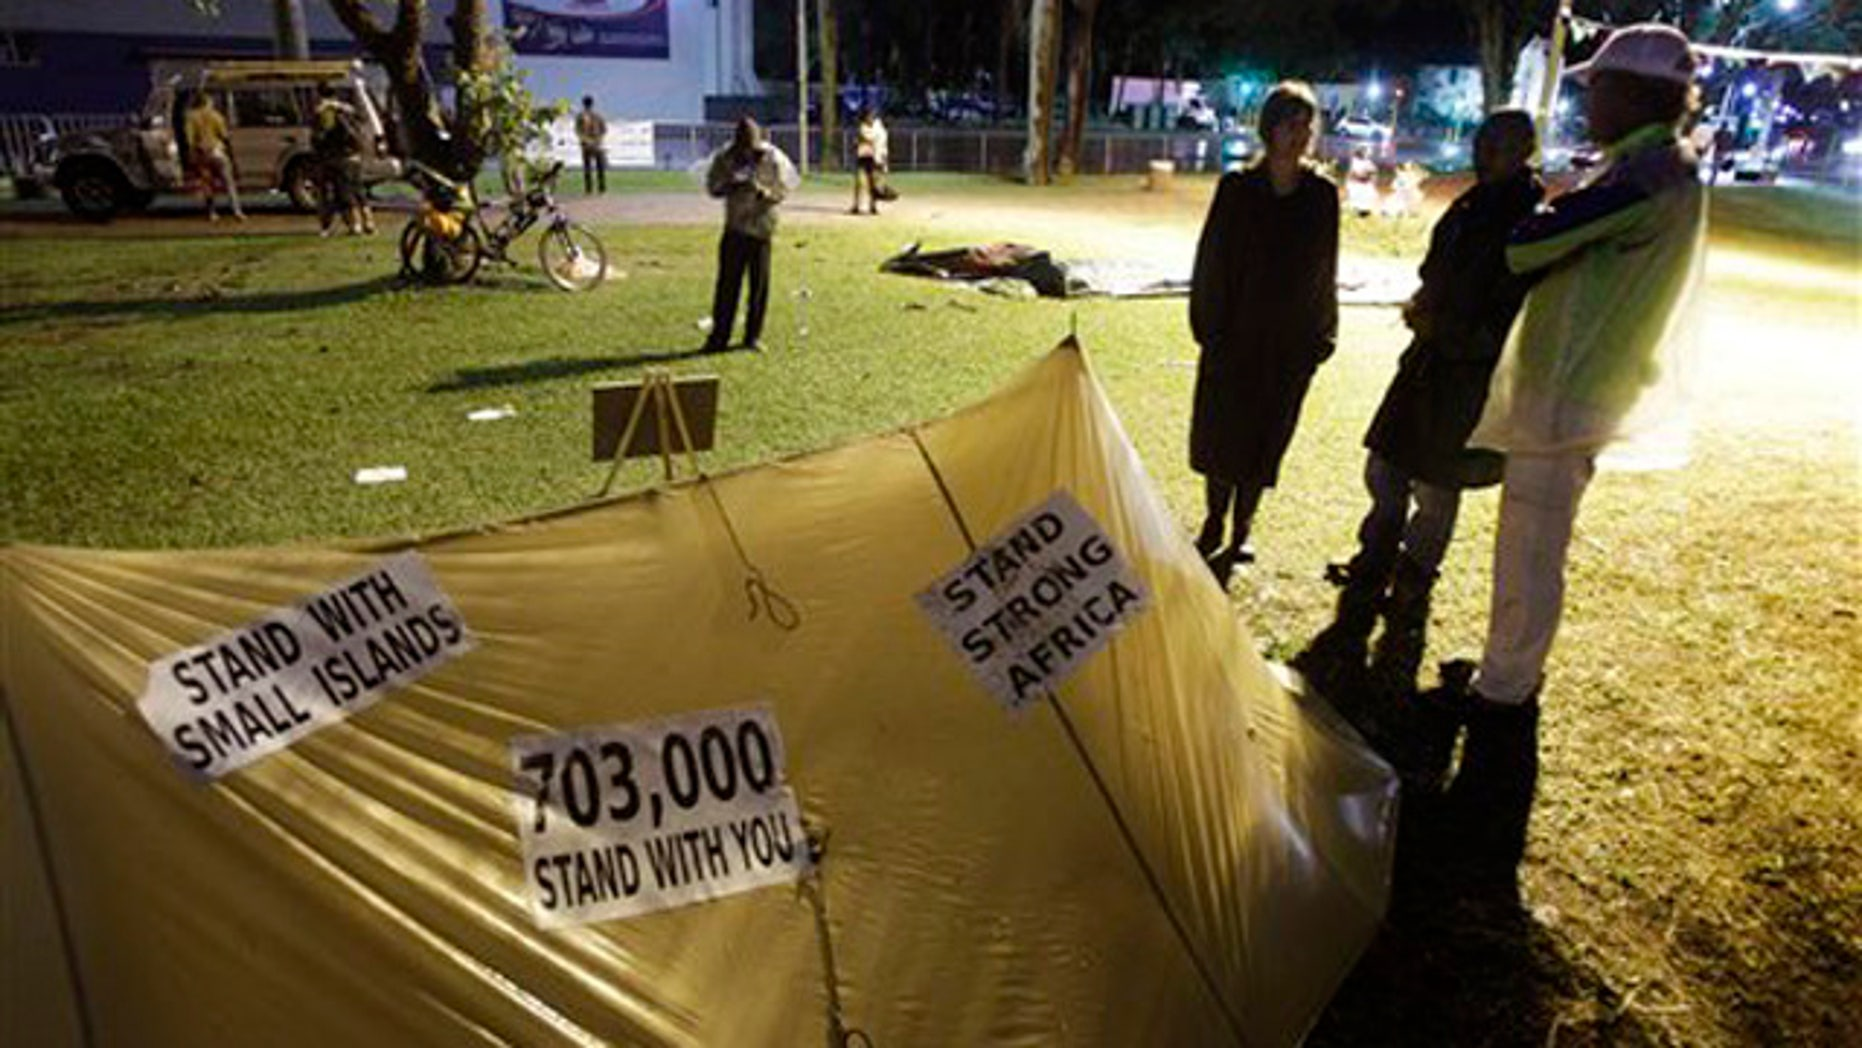 Dec. 9, 2011: Protesters hold a night vigil as talks at the climate change summit stall in Durban, South Africa.